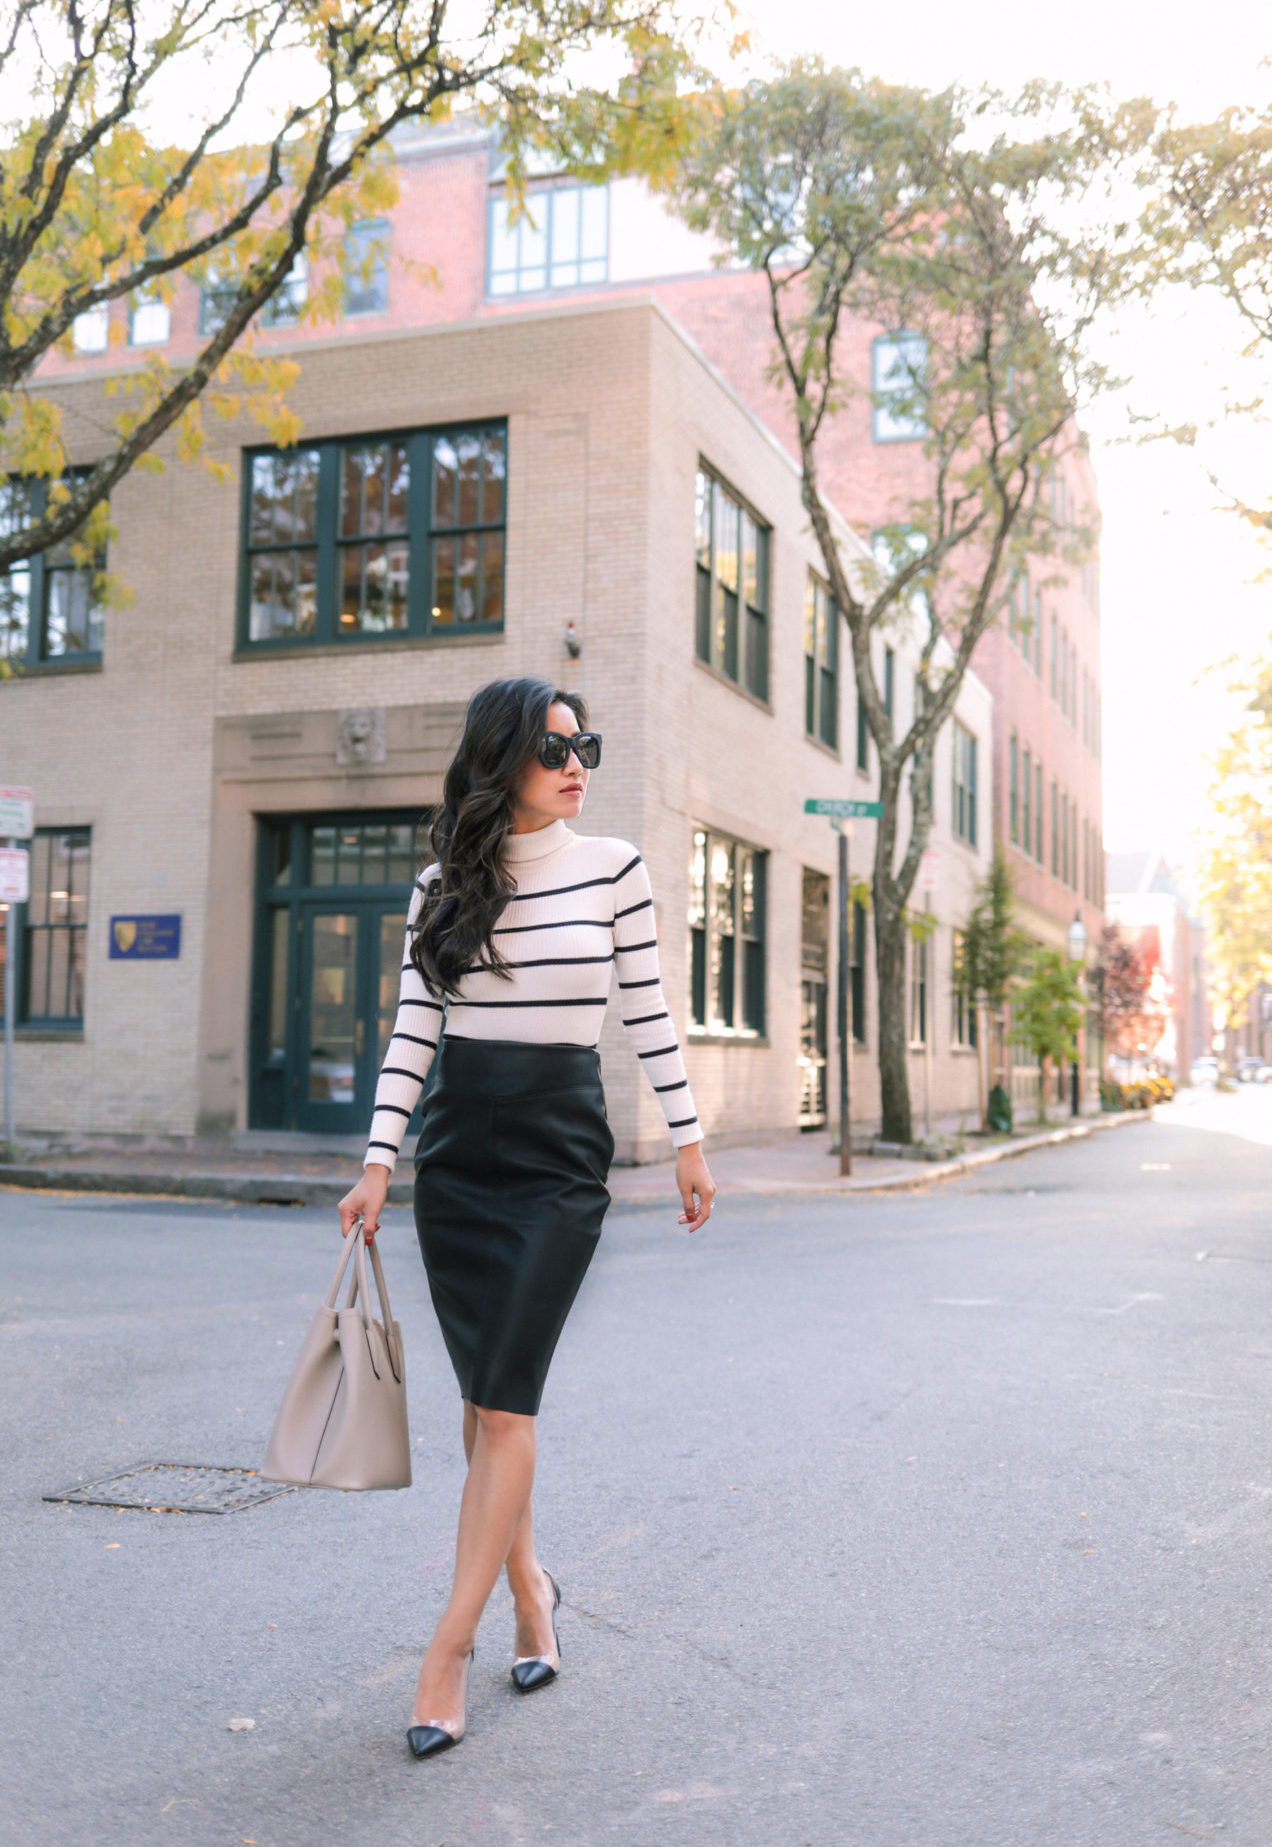 black leather pencil skirt outfit from express petites